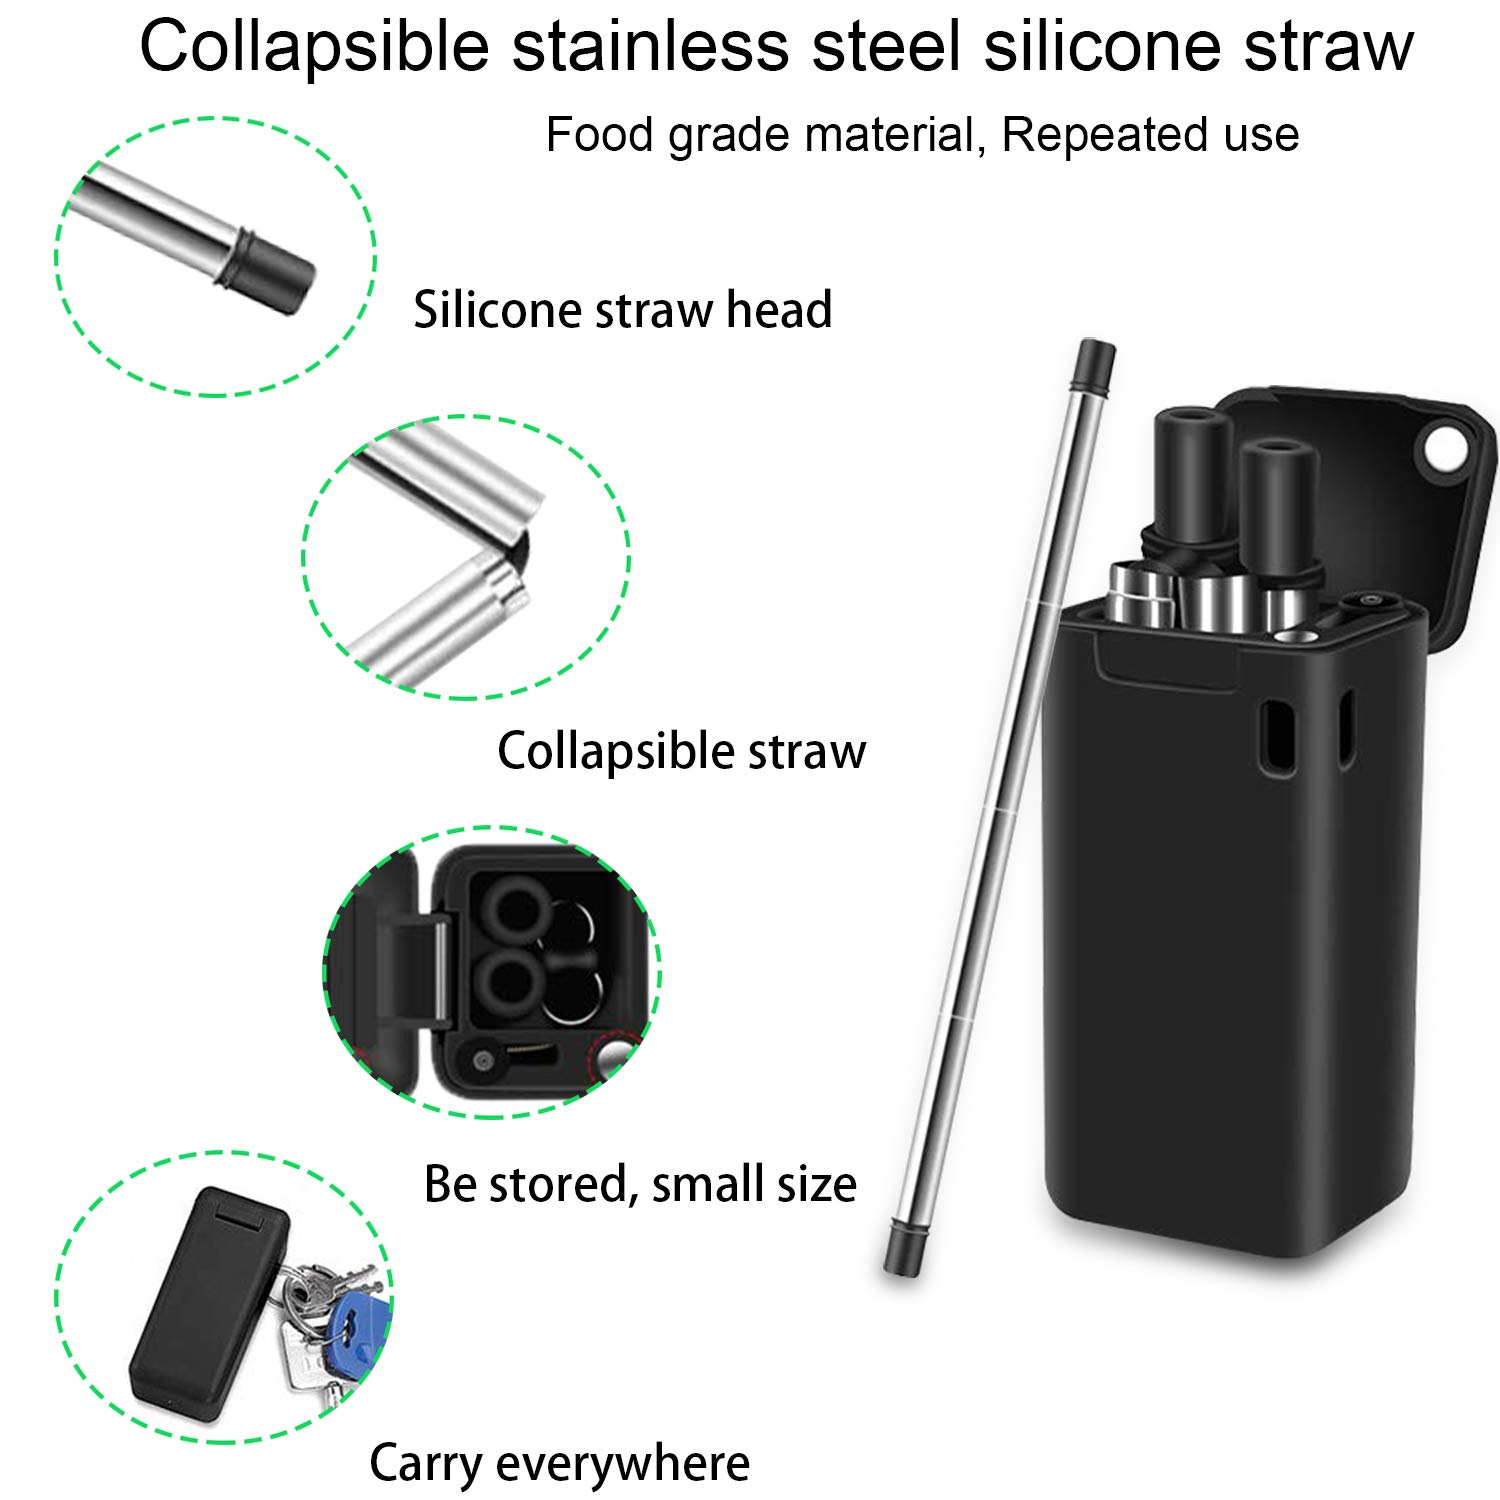 Collapsible Reusable Straws Premium Food-Grade Foldable Silicone Collapsible Straw Stainless Steel Drinking Straws Portable Set with Hard Case Holder and Cleaning Brush